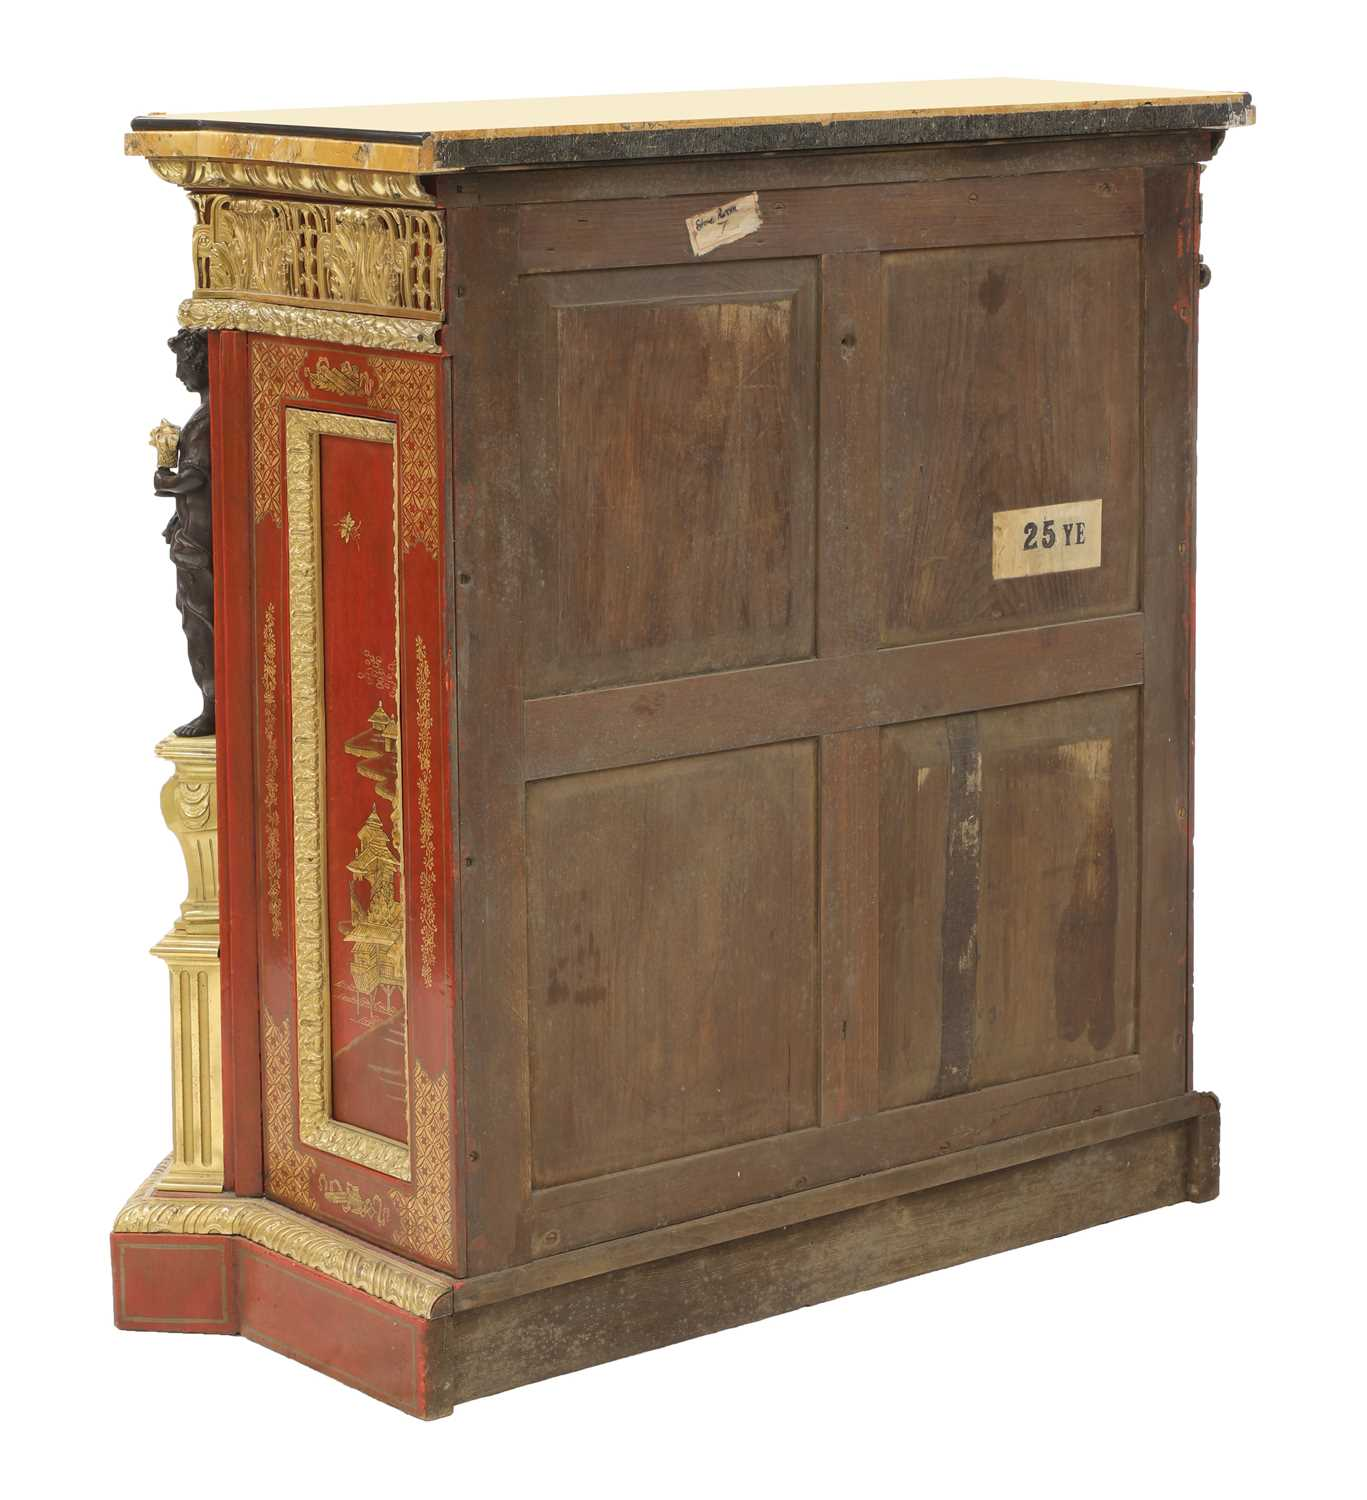 A red-lacquered and ormolu-mounted pier cabinet, - Image 7 of 16